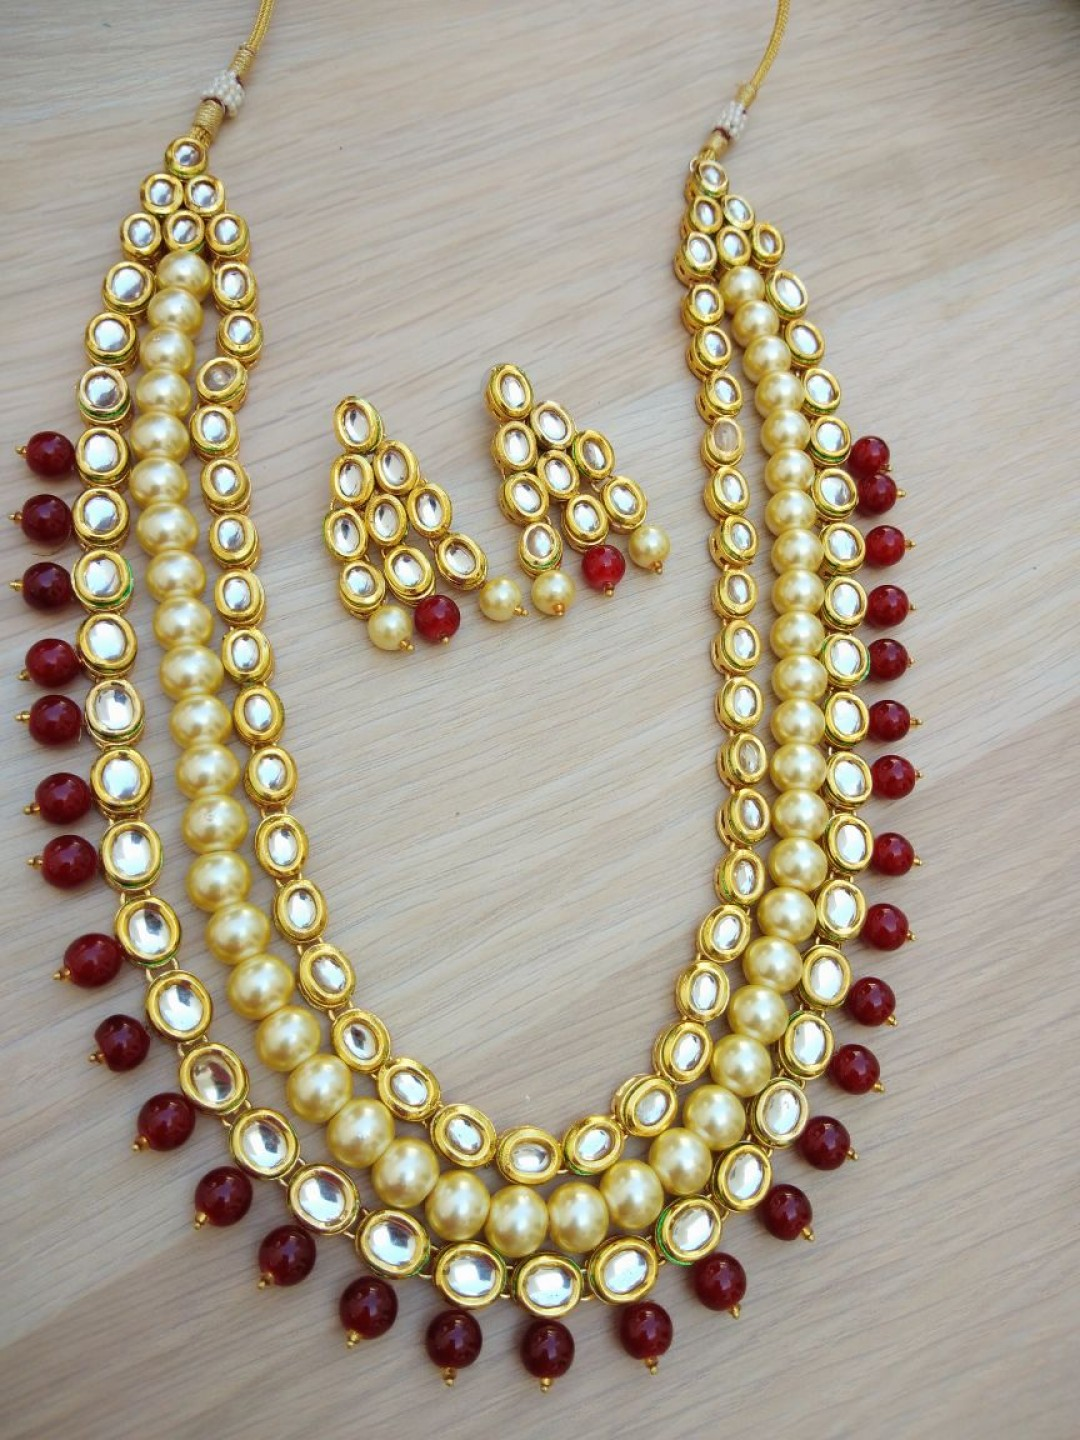 HM Necklace Set With Earrings Kundan Stone Gold Tone Maroon Color Beads For Woman & Girls 02